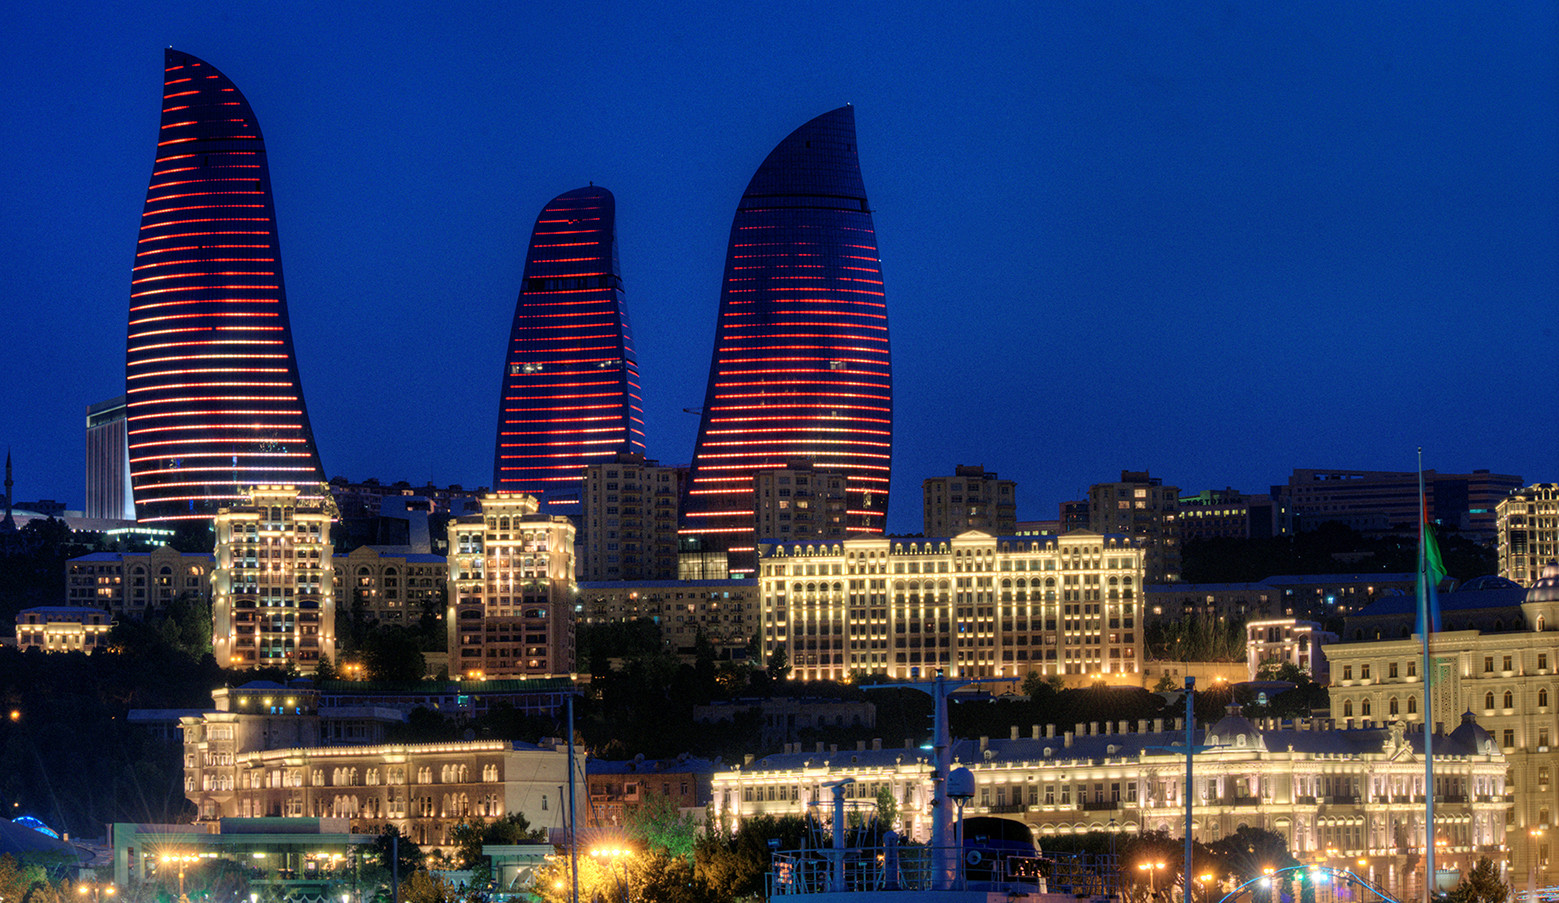 Baku Flame Towers - HOK - projects - igs magazine - 2